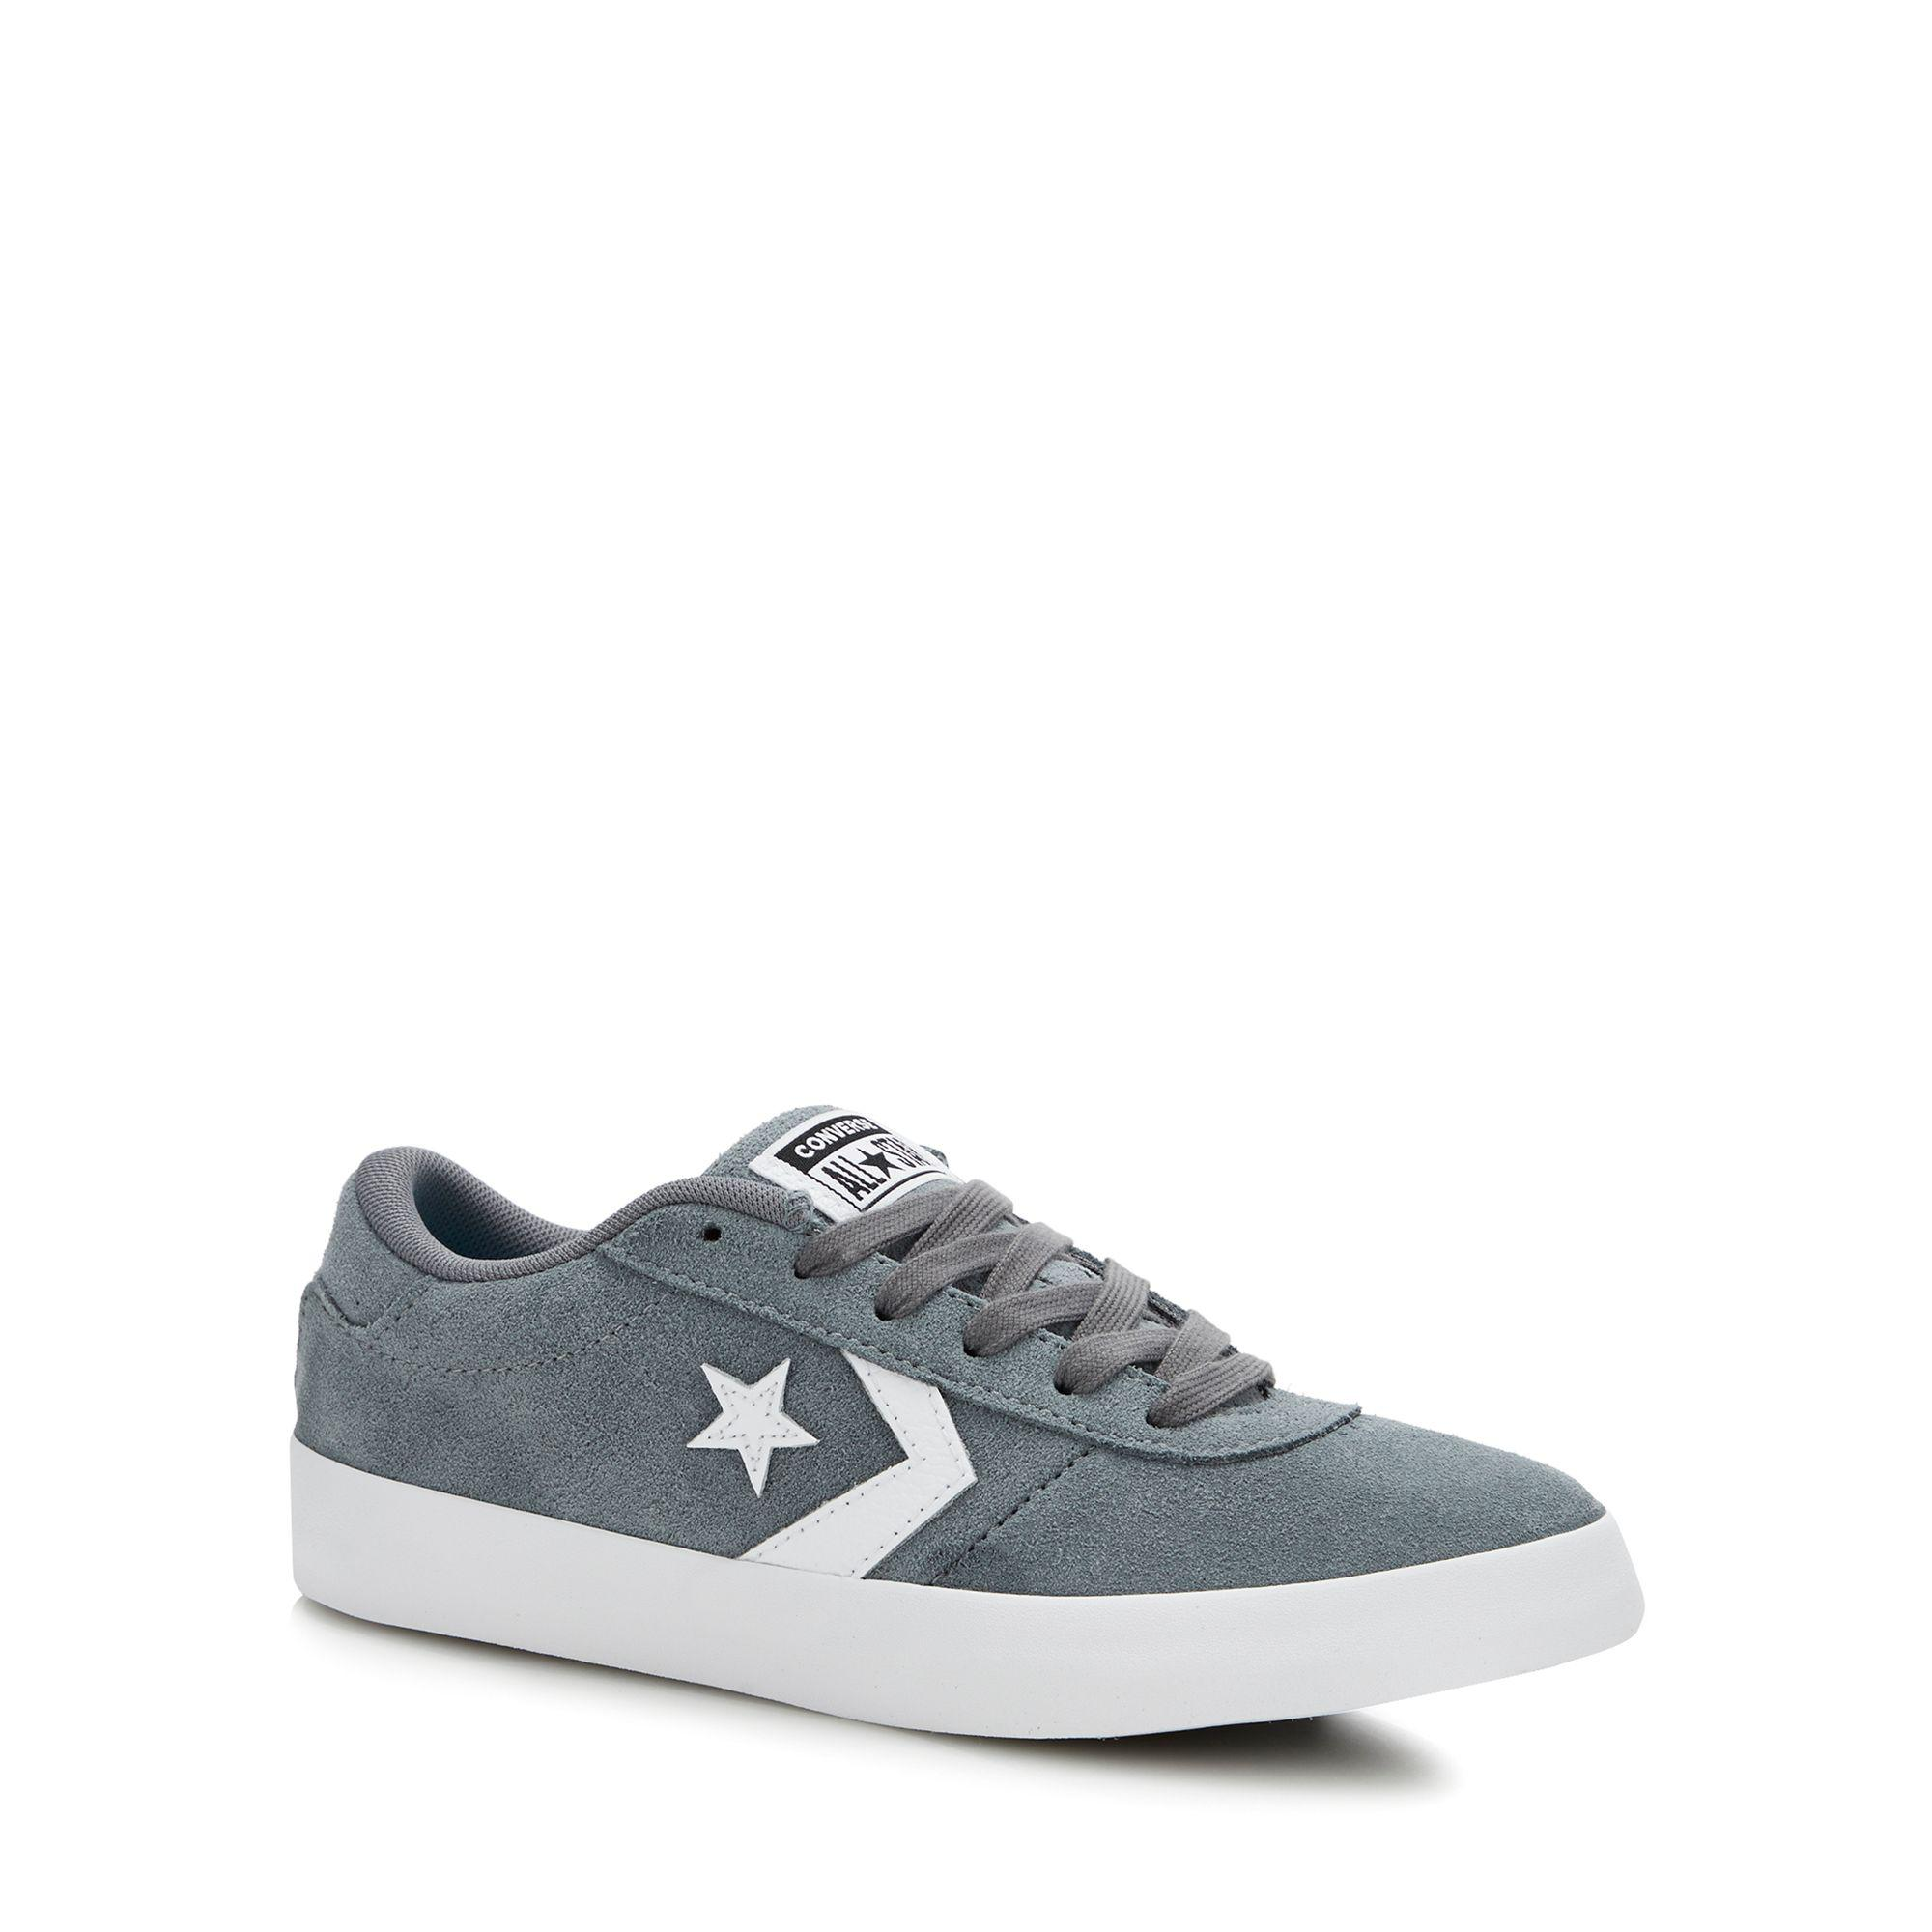 3a17a3f402c91f Converse Grey Suede  point Star  Trainers in Gray - Lyst